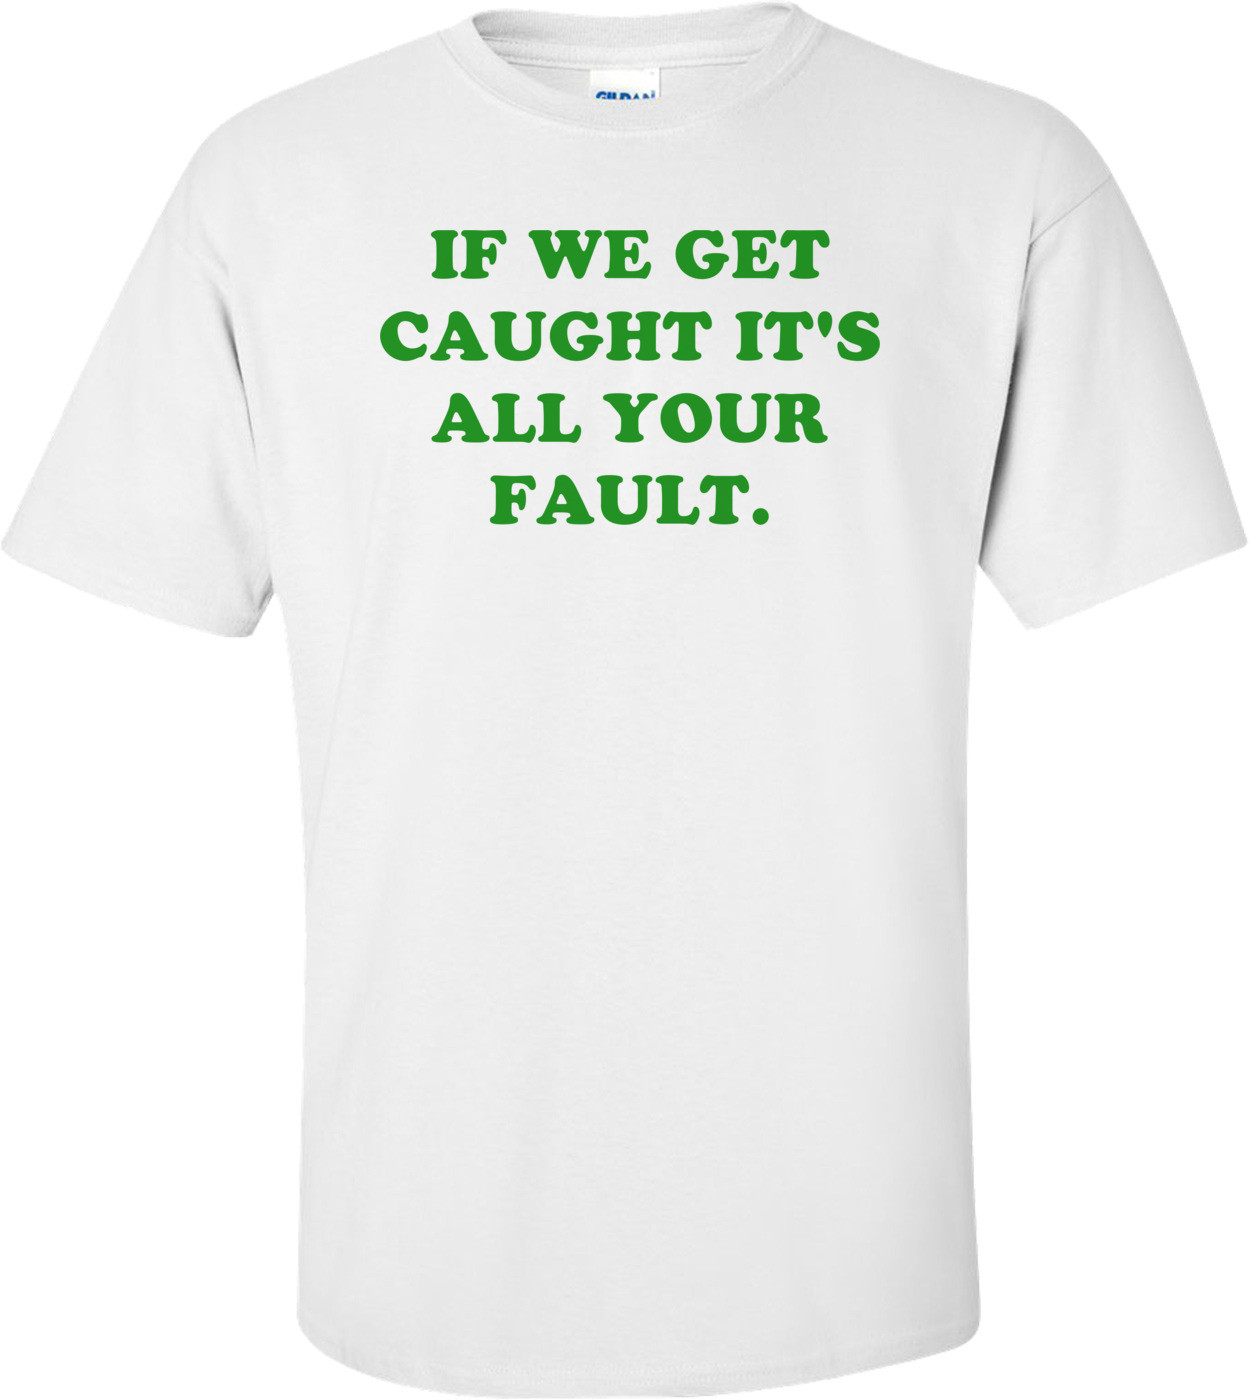 IF WE GET CAUGHT IT'S ALL YOUR FAULT. Shirt